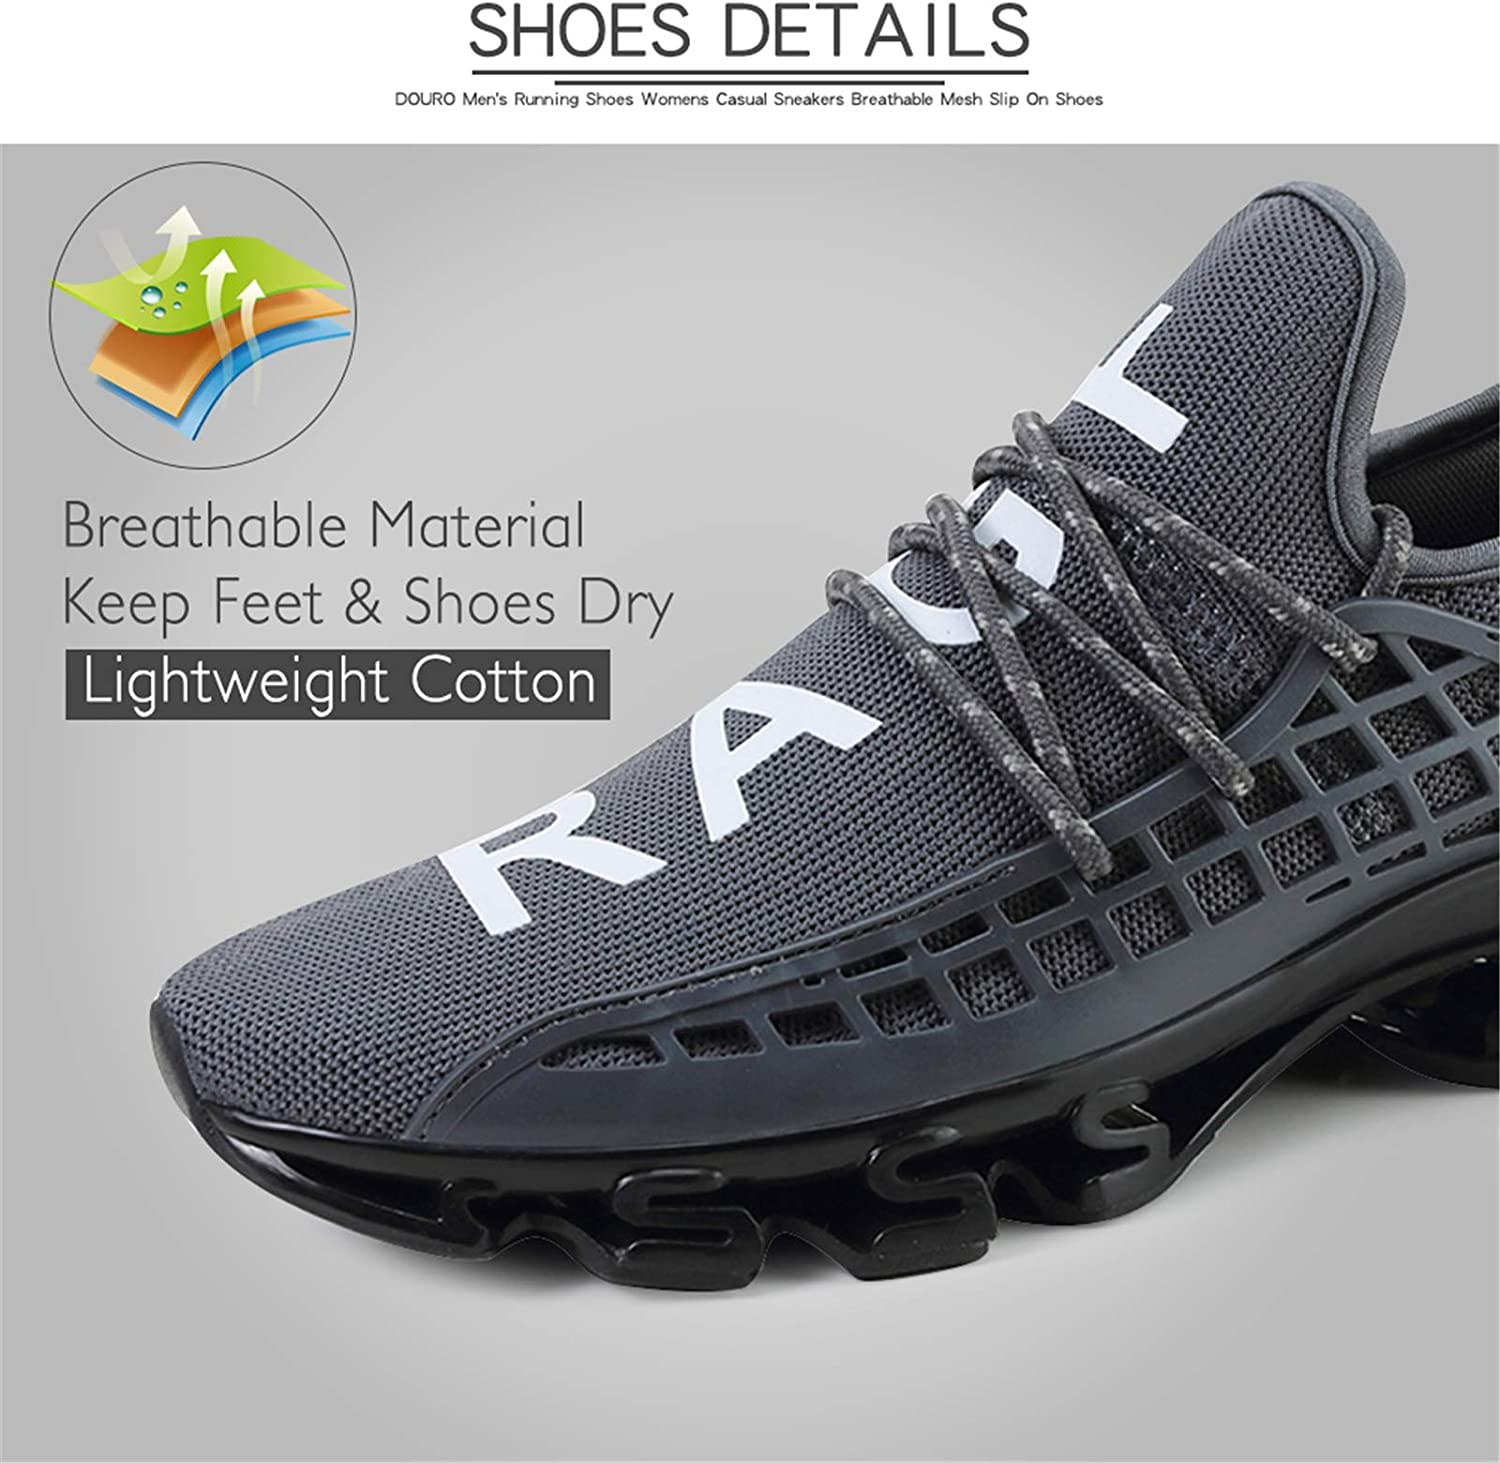 DUORO Mens Running Shoes Womens Casual Sneakers Breathable Mesh Slip on Blade Athletic Lightweight Tennis Sports Shoe for Men